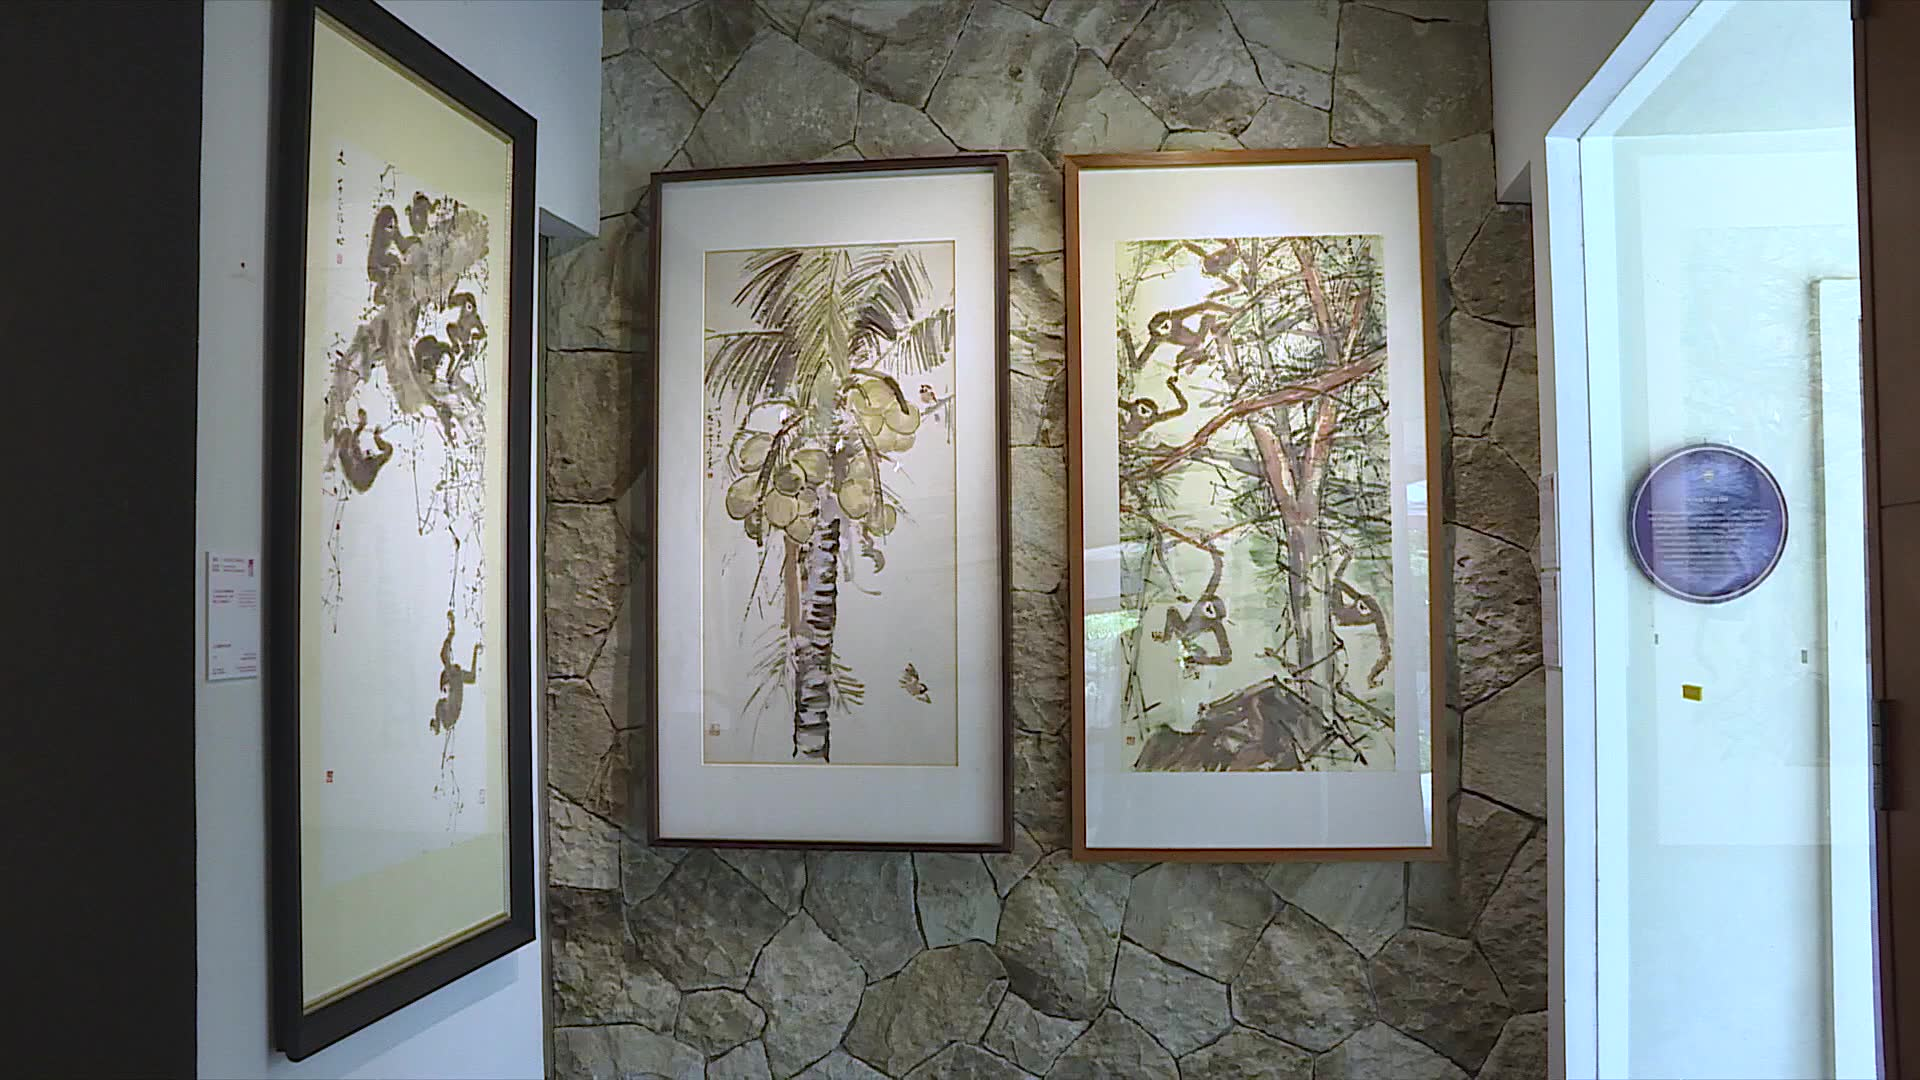 Chen Wen Hsi exhibition pays homage to painter's life and work | Video